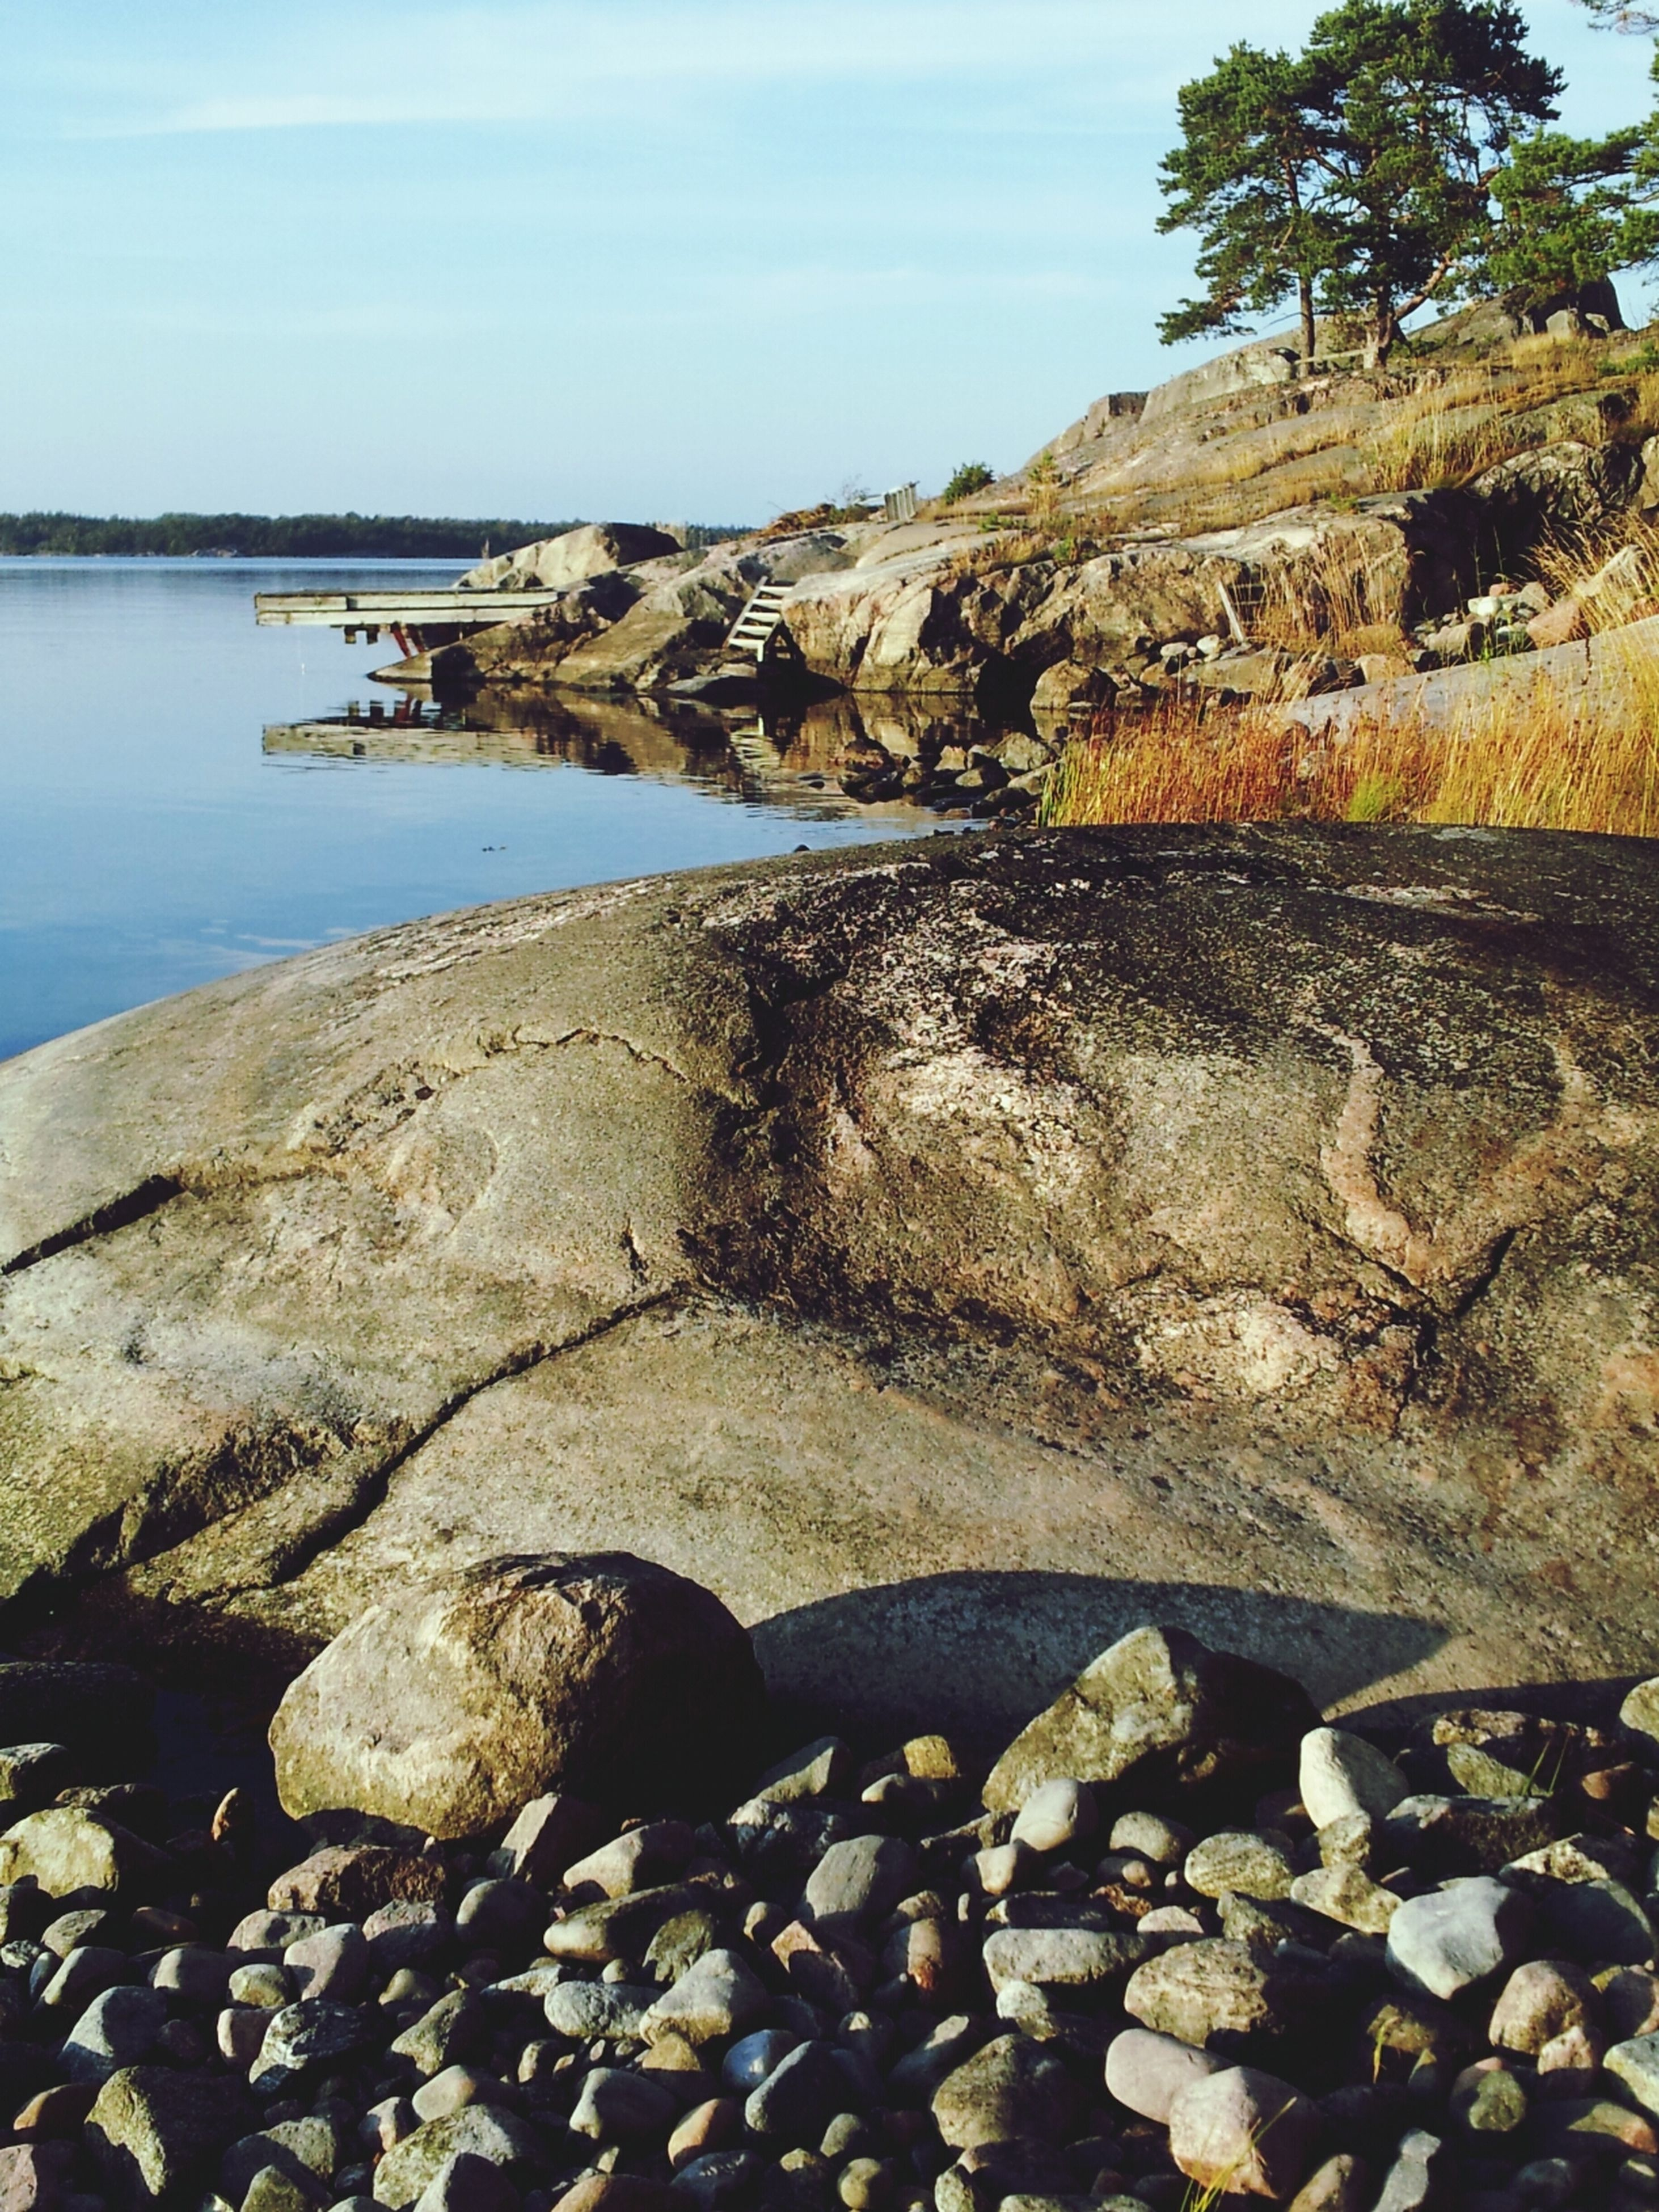 water, rock - object, stone - object, tranquility, sea, tranquil scene, scenics, nature, pebble, stone, sky, beauty in nature, shore, reflection, beach, rock, lake, sunlight, clear sky, river